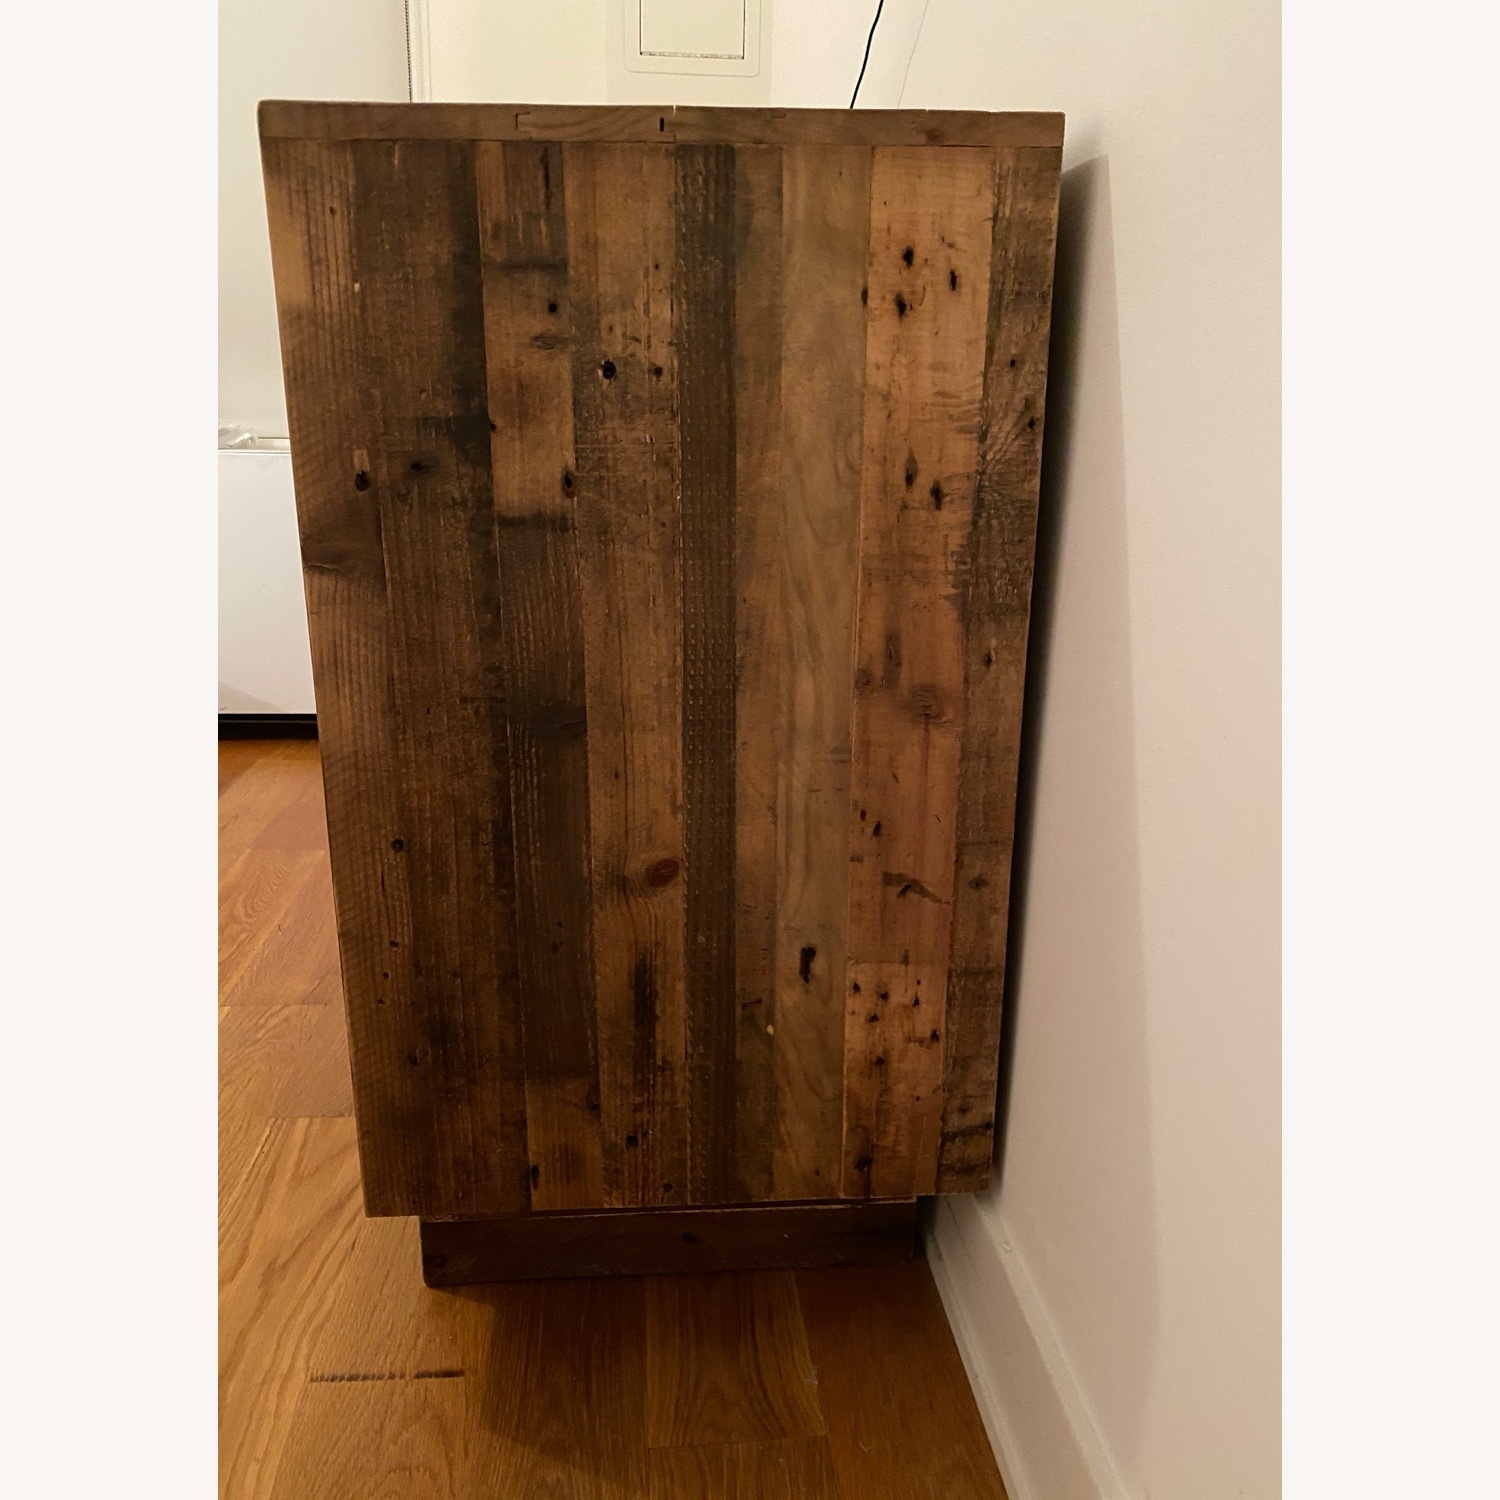 West Elm Reclaimed Wood 3-Drawer Dresser - image-2